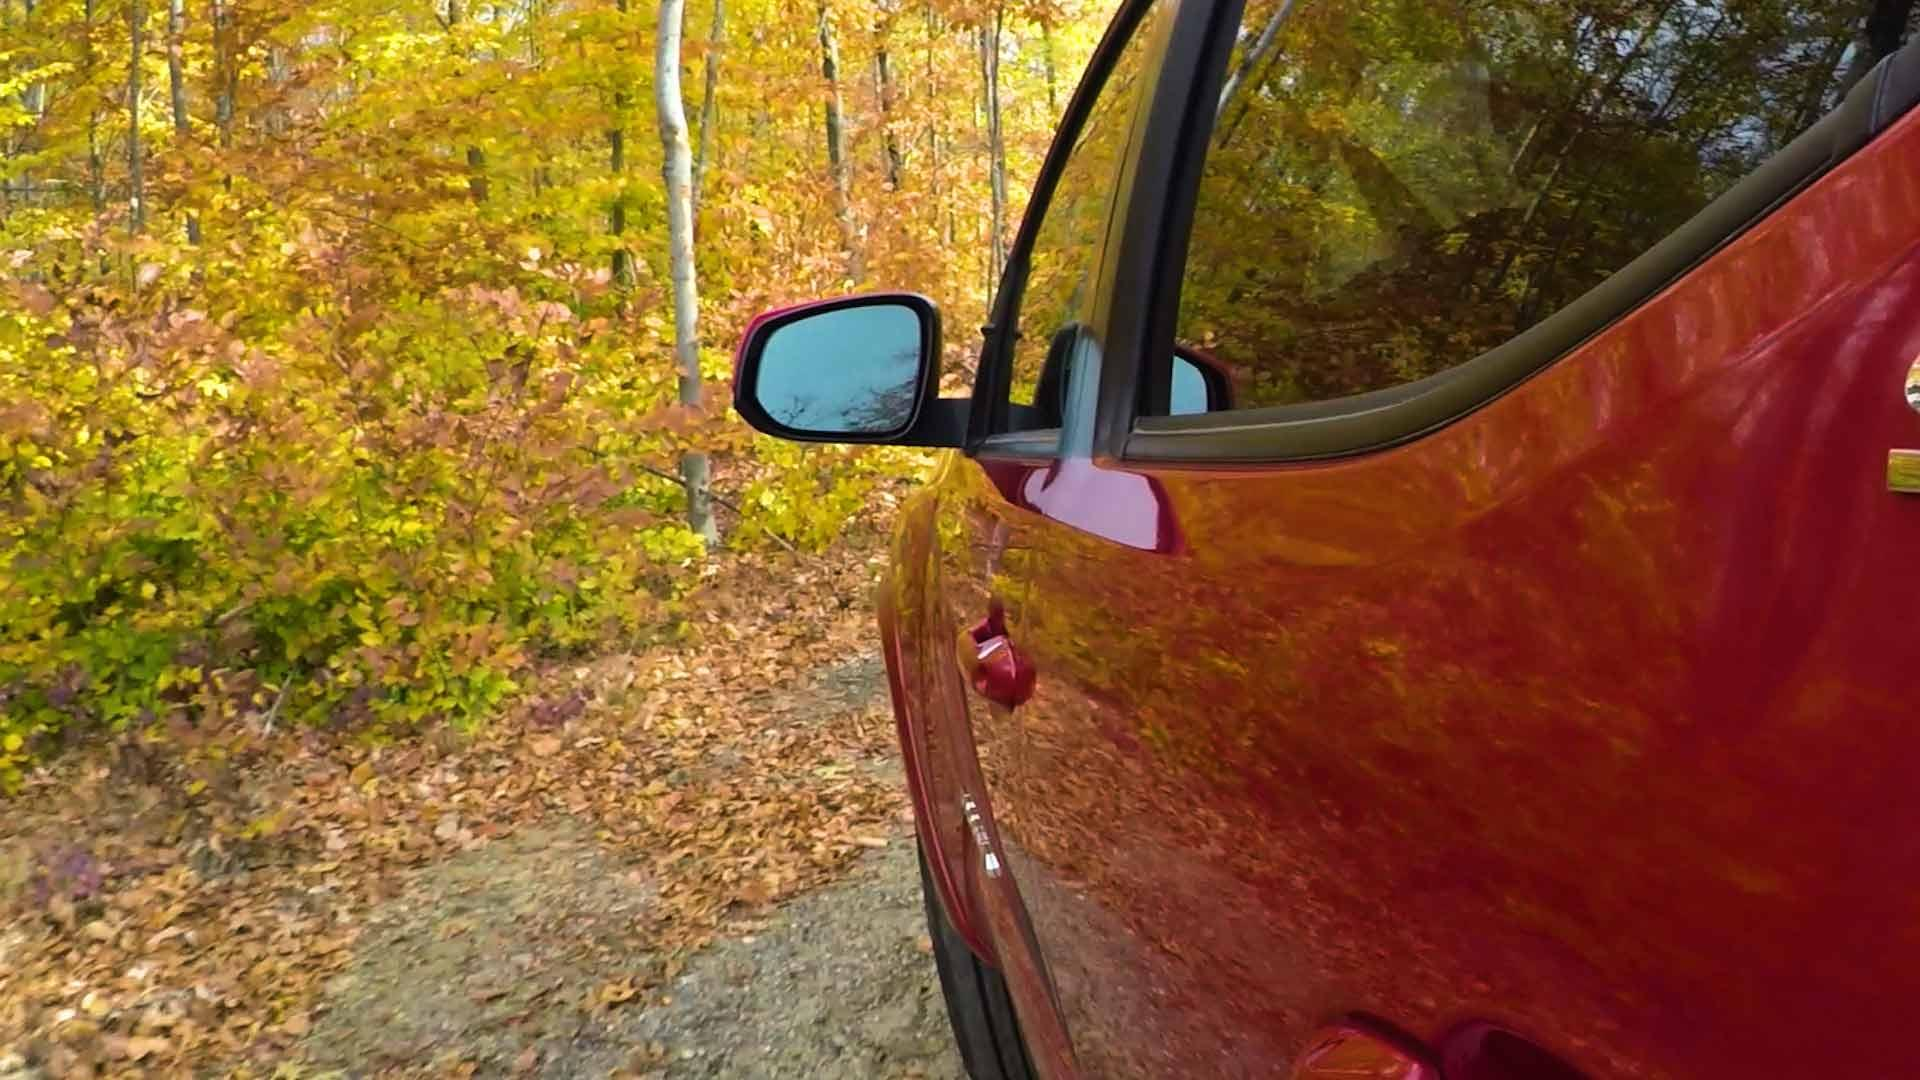 consumer reports used car buying guide 2014 pdf - Dolap.magnetband.co